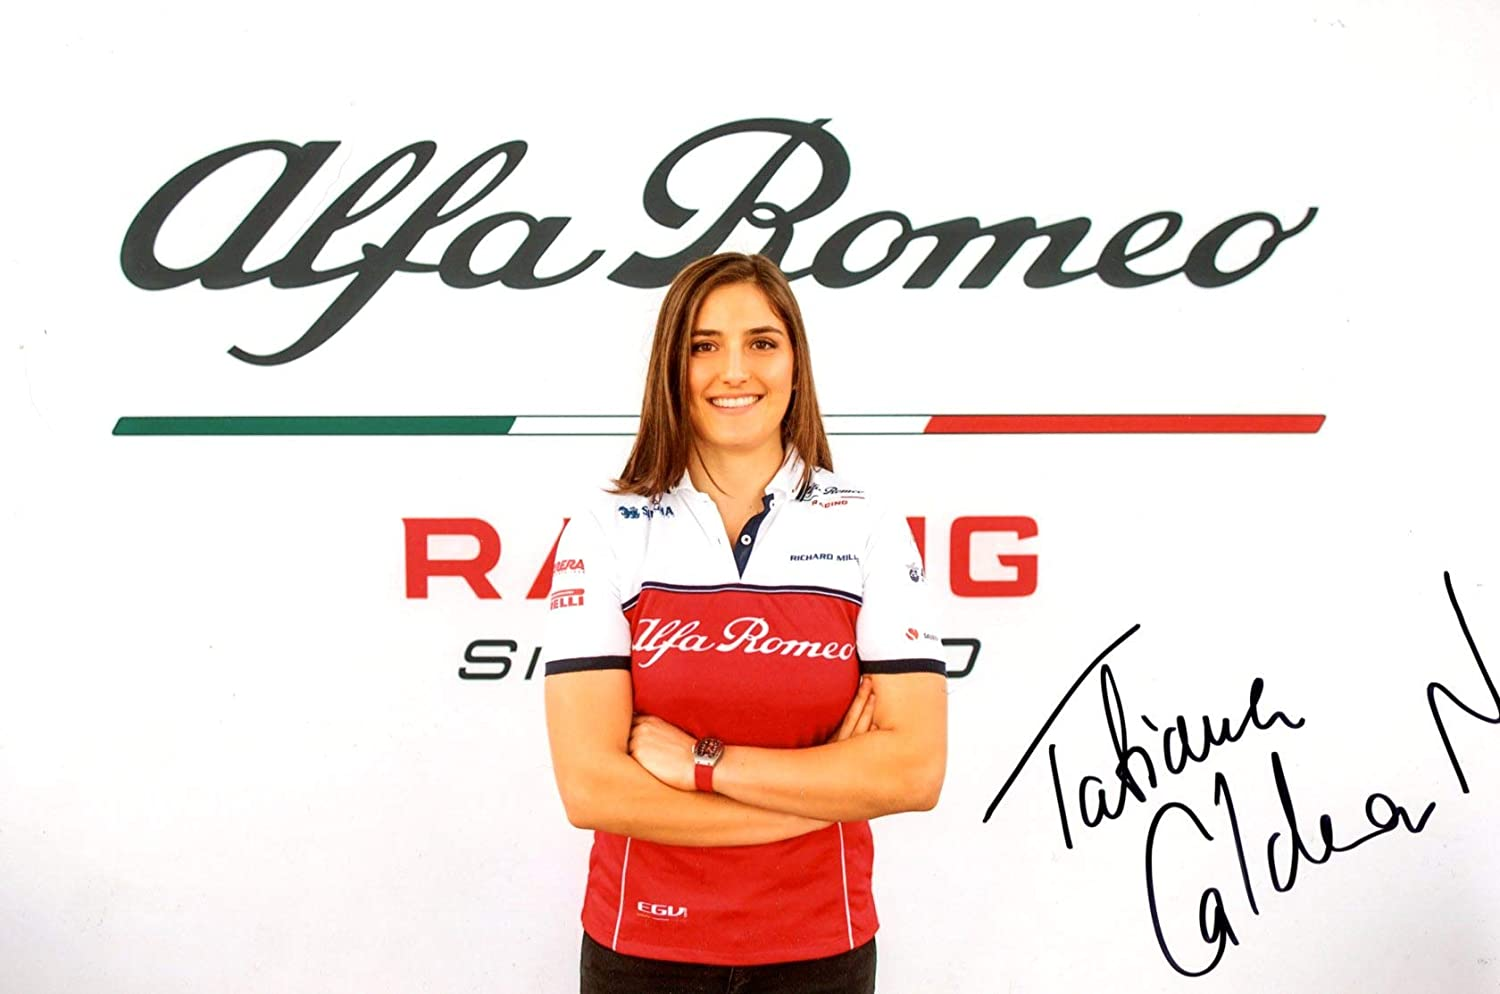 F1 Tatiana Calderón TEST DRIVER ALFA ROMEO RACING 2019 autograph, IP signed photo